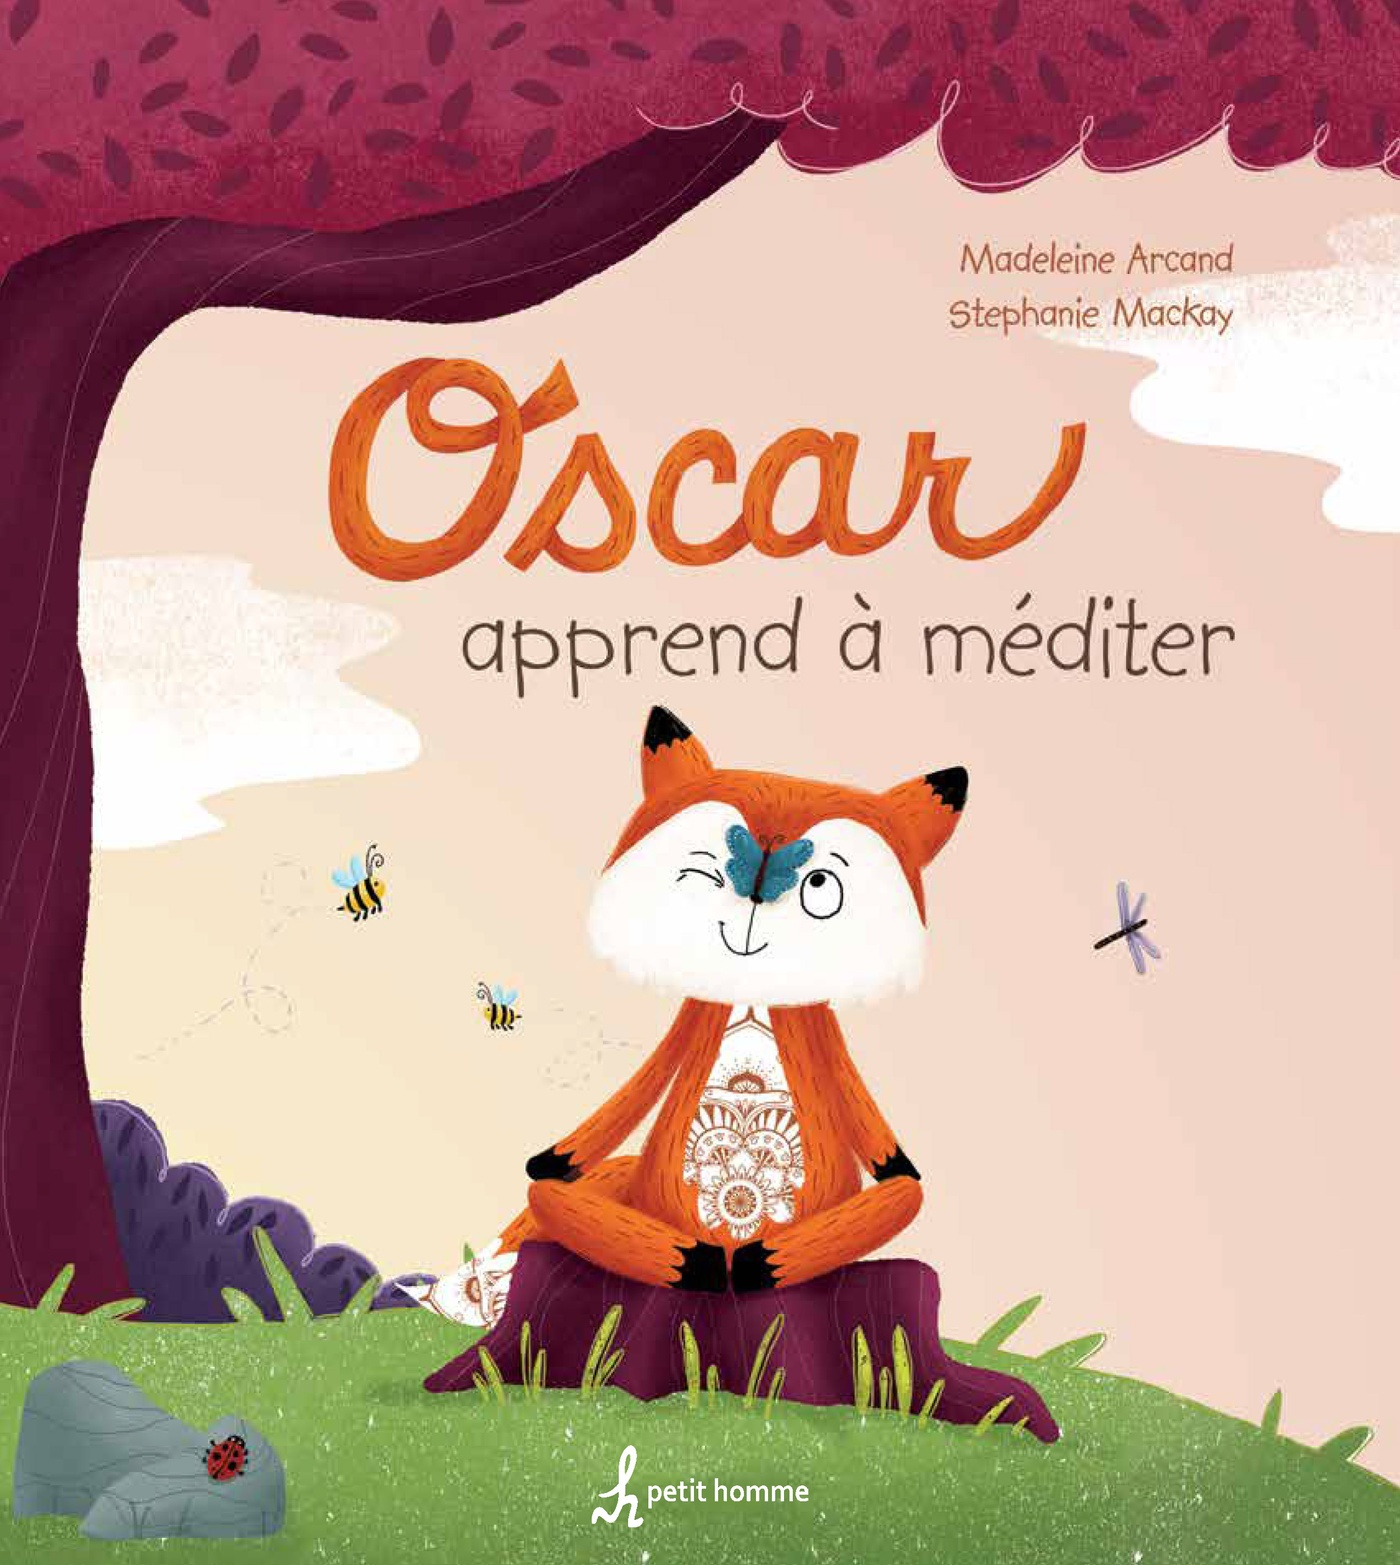 Stephanie Mackay - Oscar apprend a mediter_couverture une